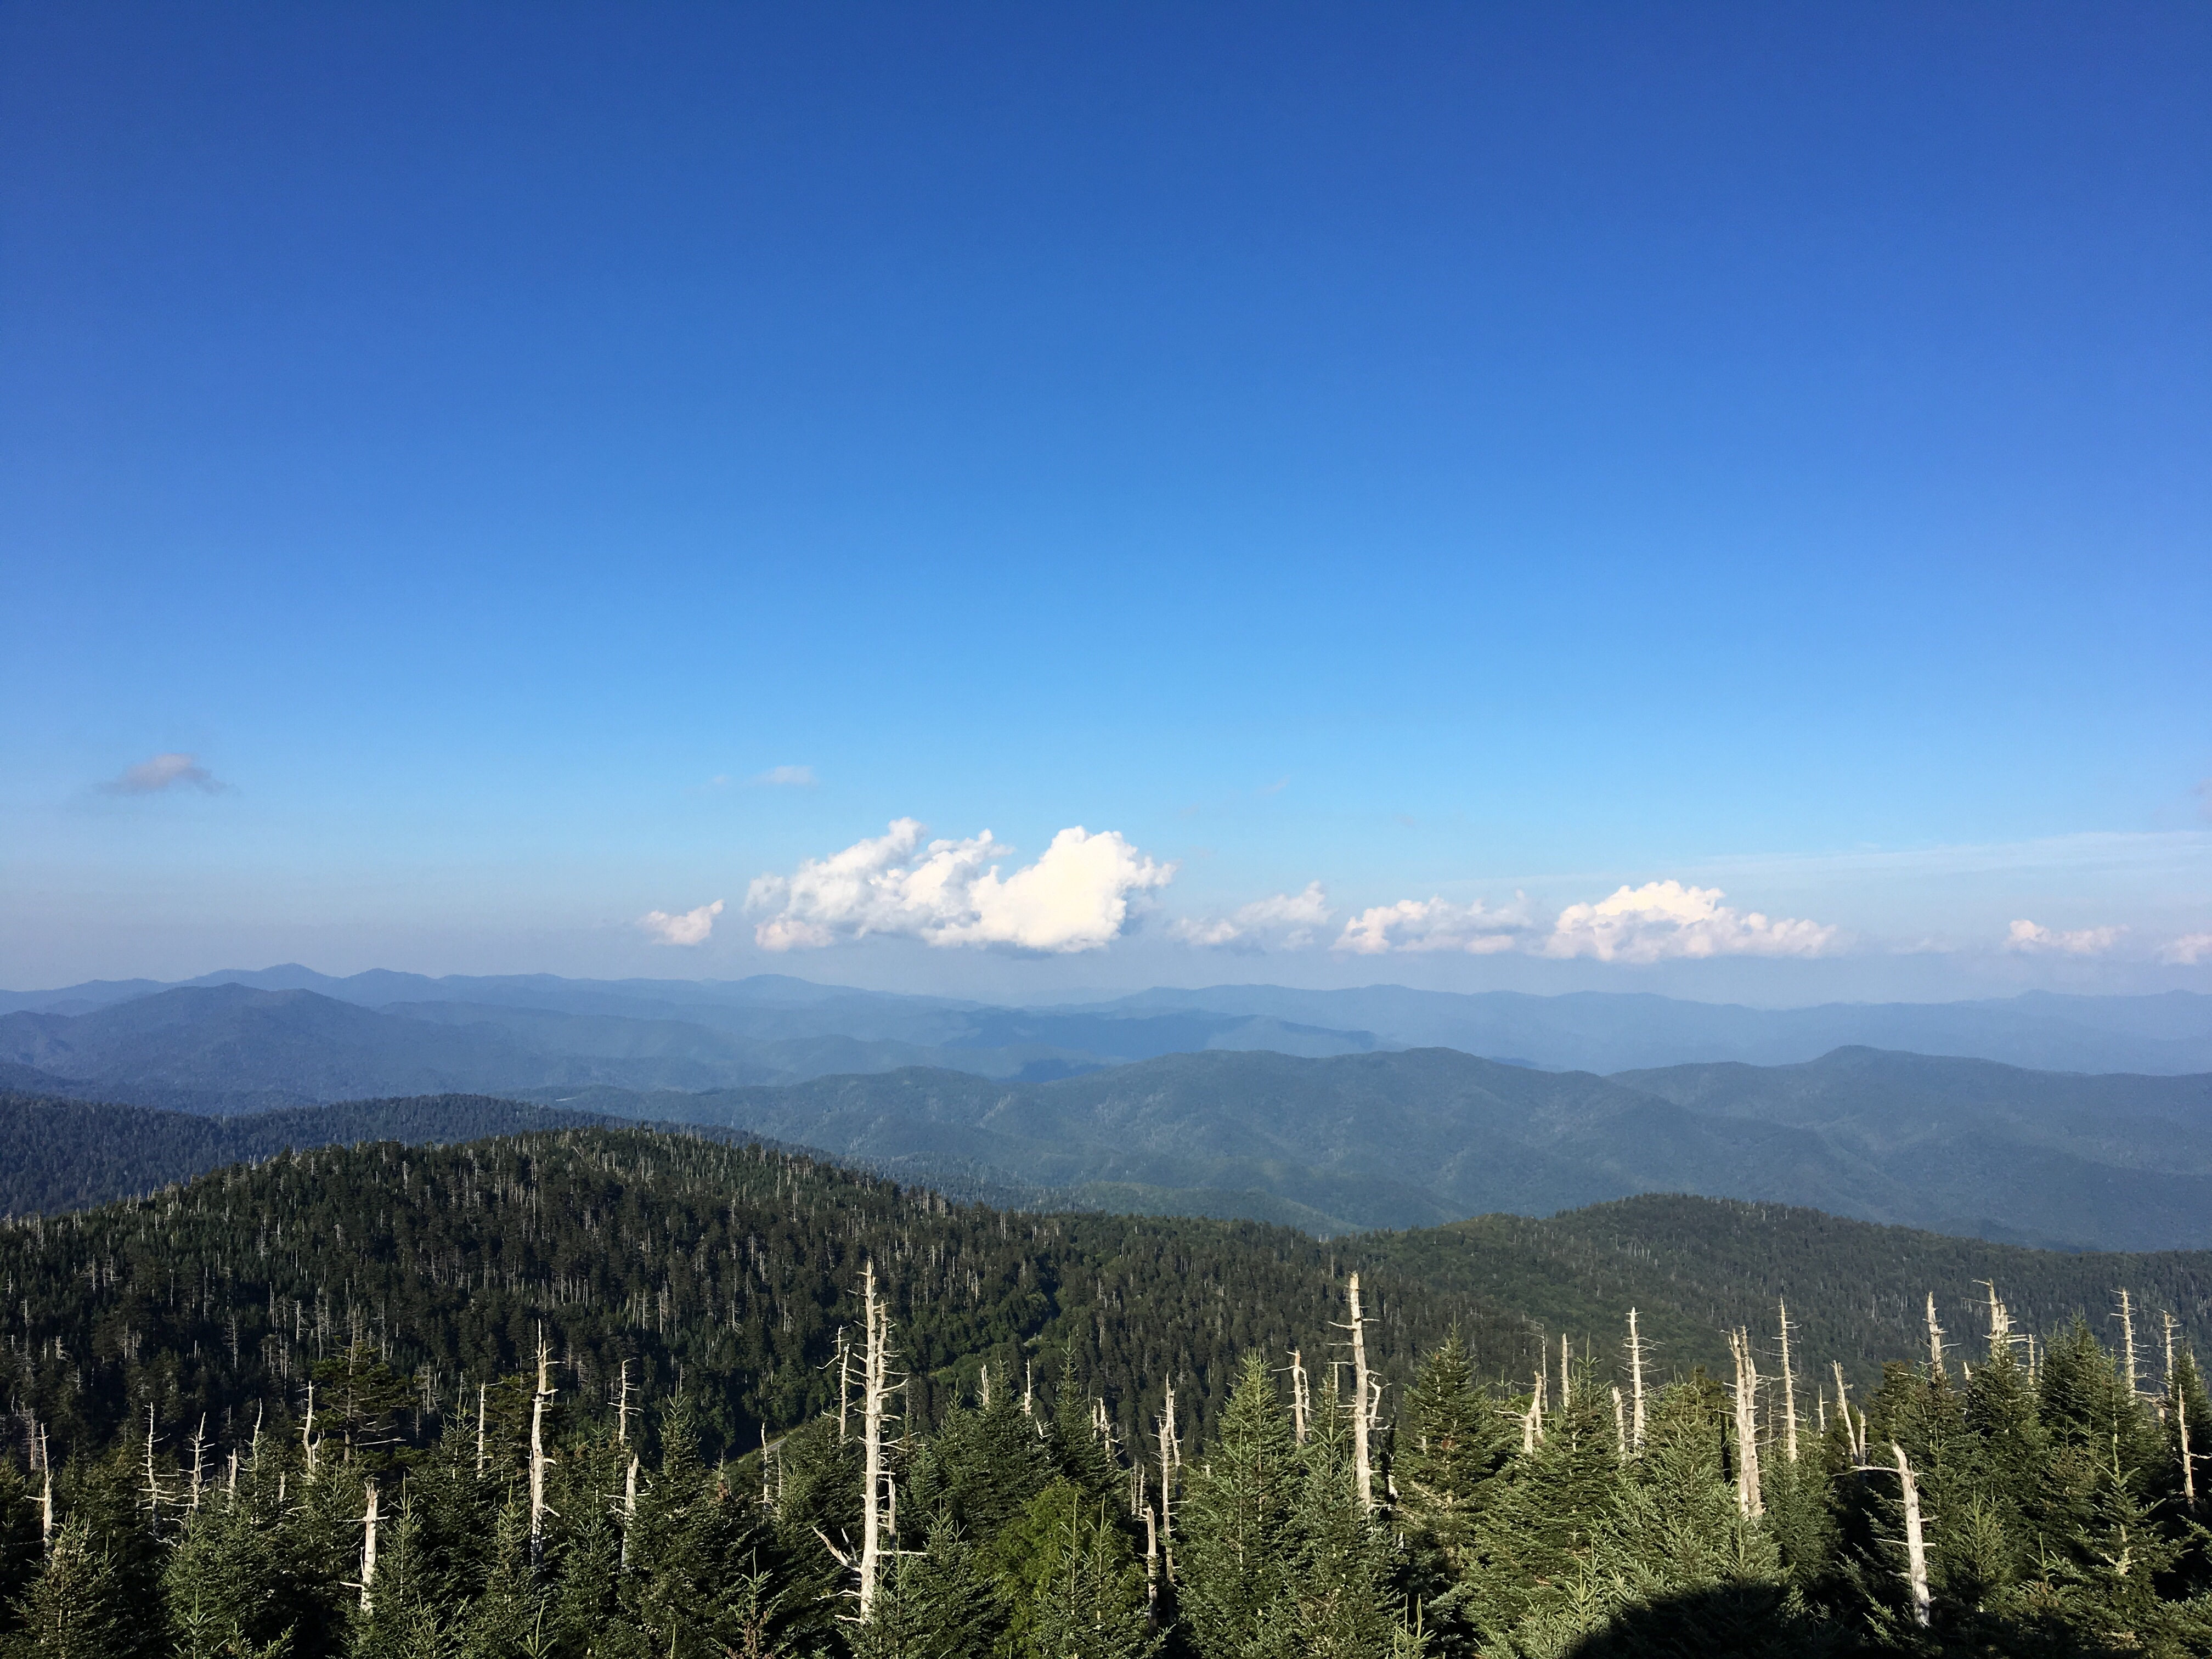 View from Clingman's Dome, Great Smoky Mountains National Park